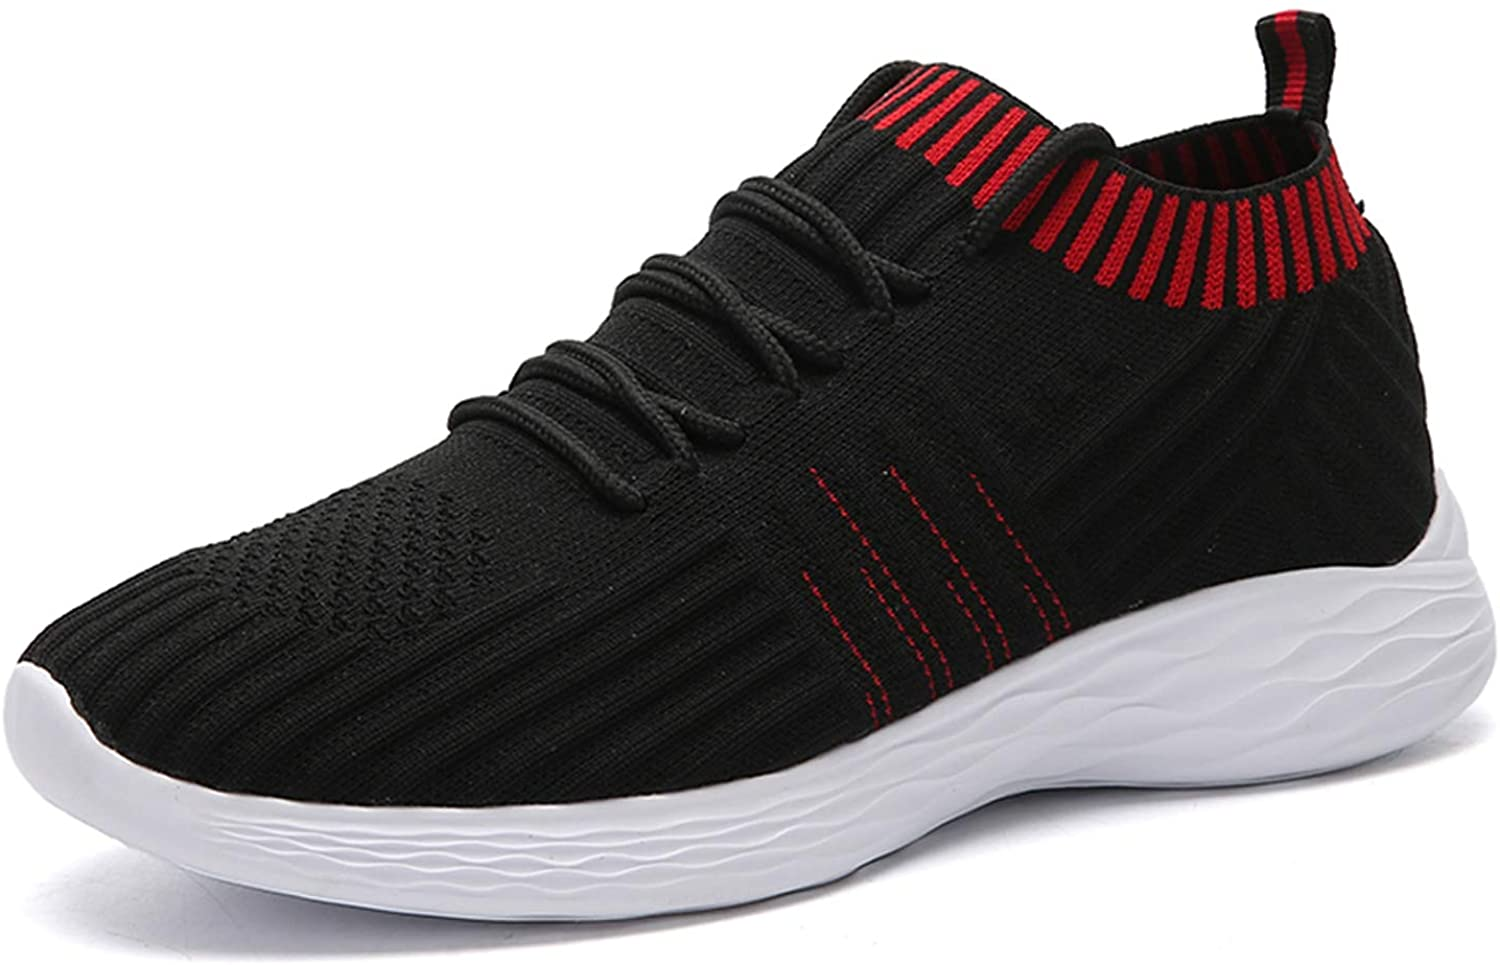 MARKOR Women's Athletic Walking Shoes Casual Mesh-Comfortable Lightweight Slip On Knit Fashion Sneakers Gym Sneakers for Women